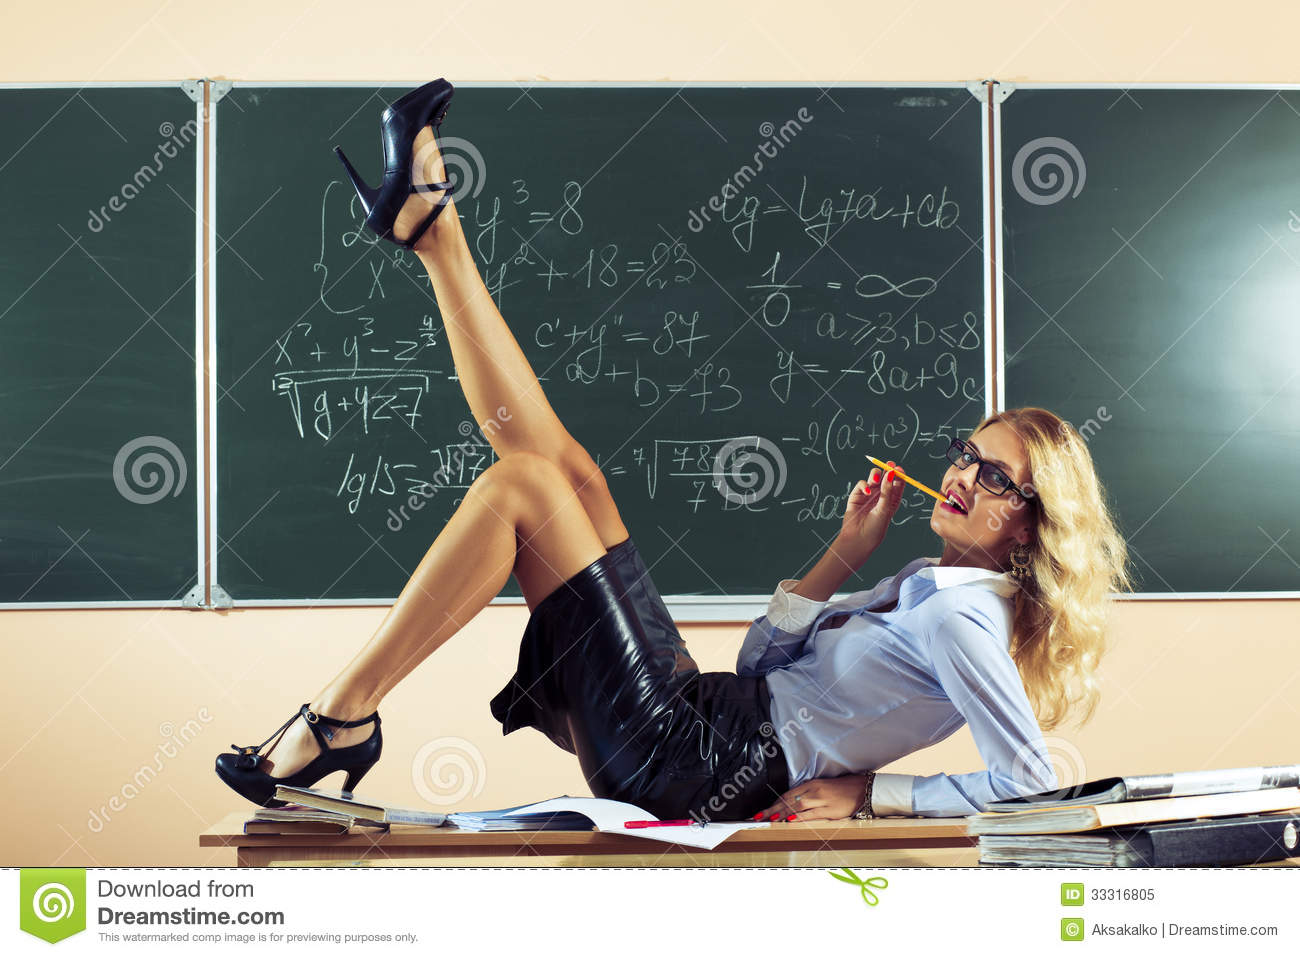 https://thumbs.dreamstime.com/z/beautiful-young-sexy-teacher-posing-table-33316805.jpg